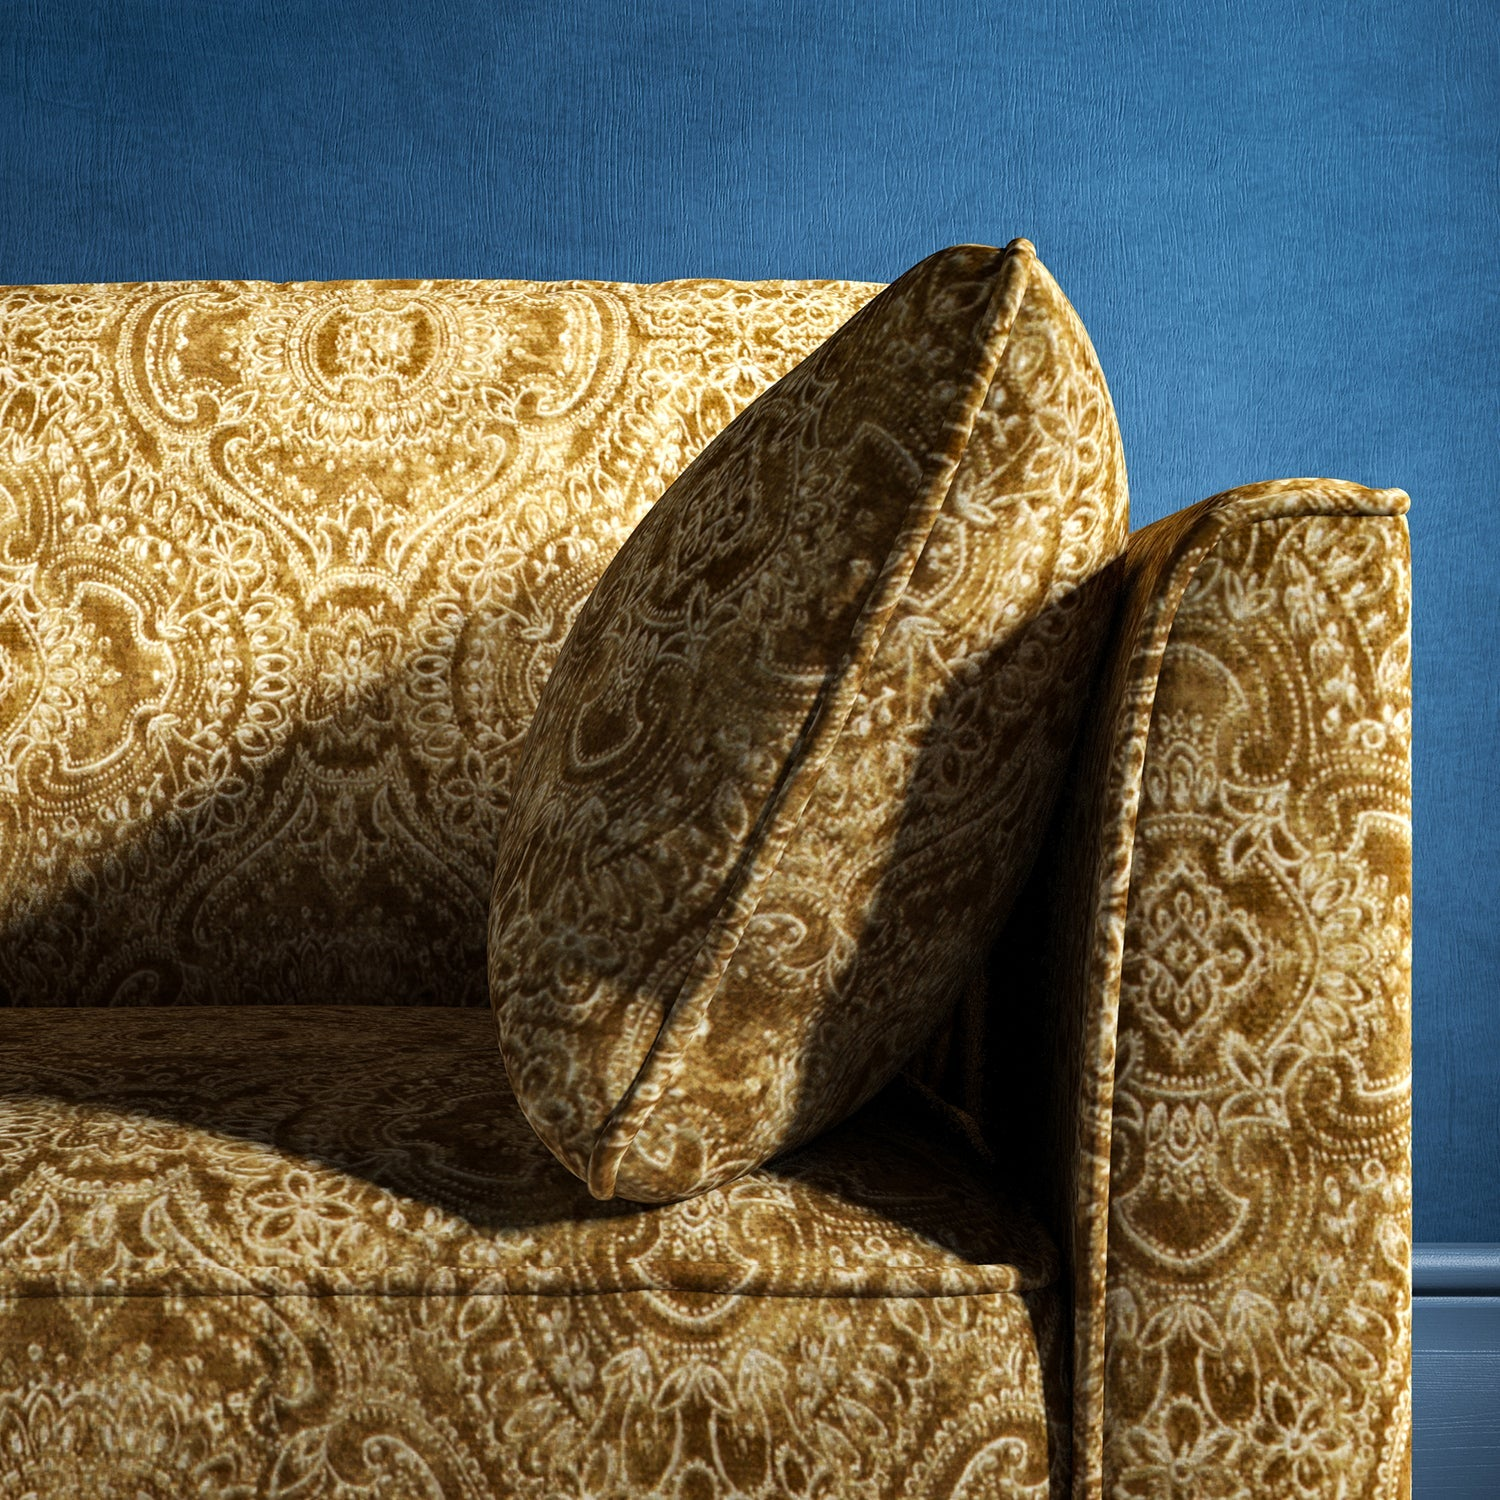 Sofa upholstered in a gold upholstery fabric with intricate jewel like design